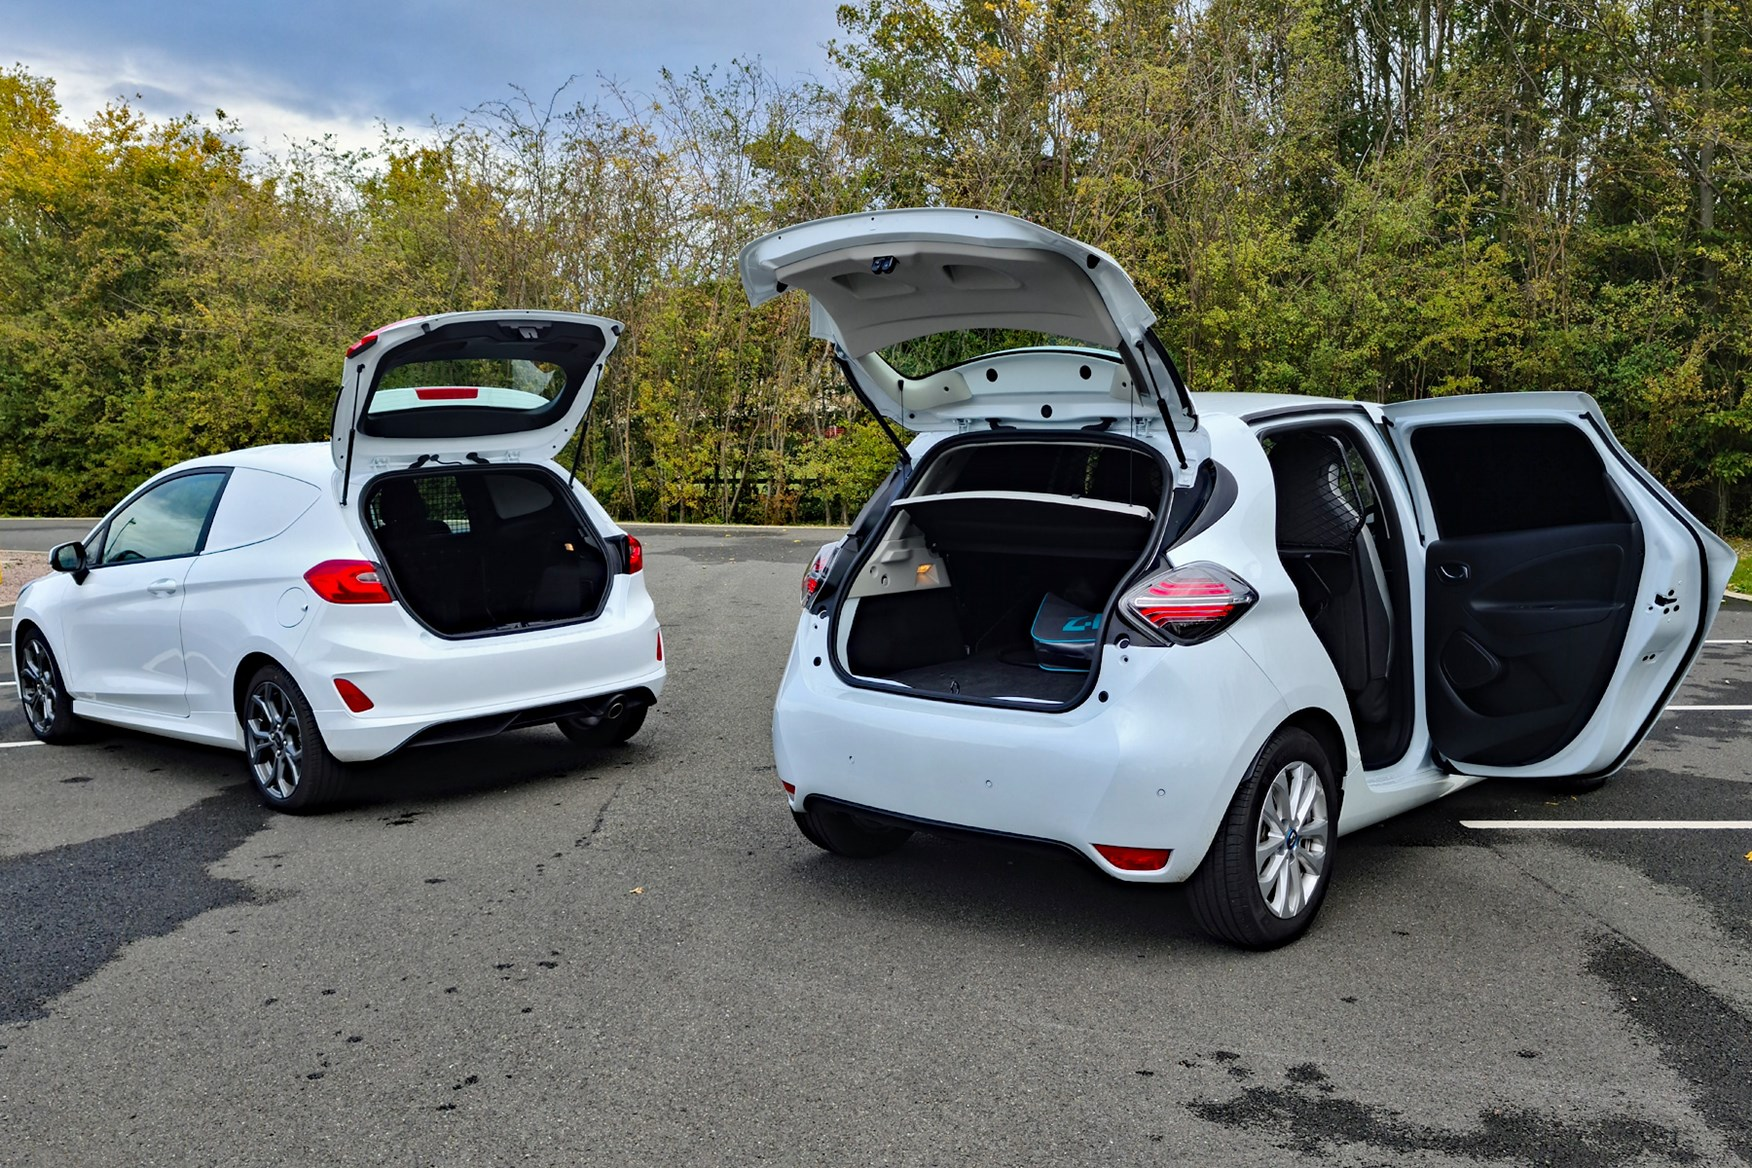 Renault Zoe Van review, 2020, with Ford Fiesta Van, rear view, tailgates and doors open